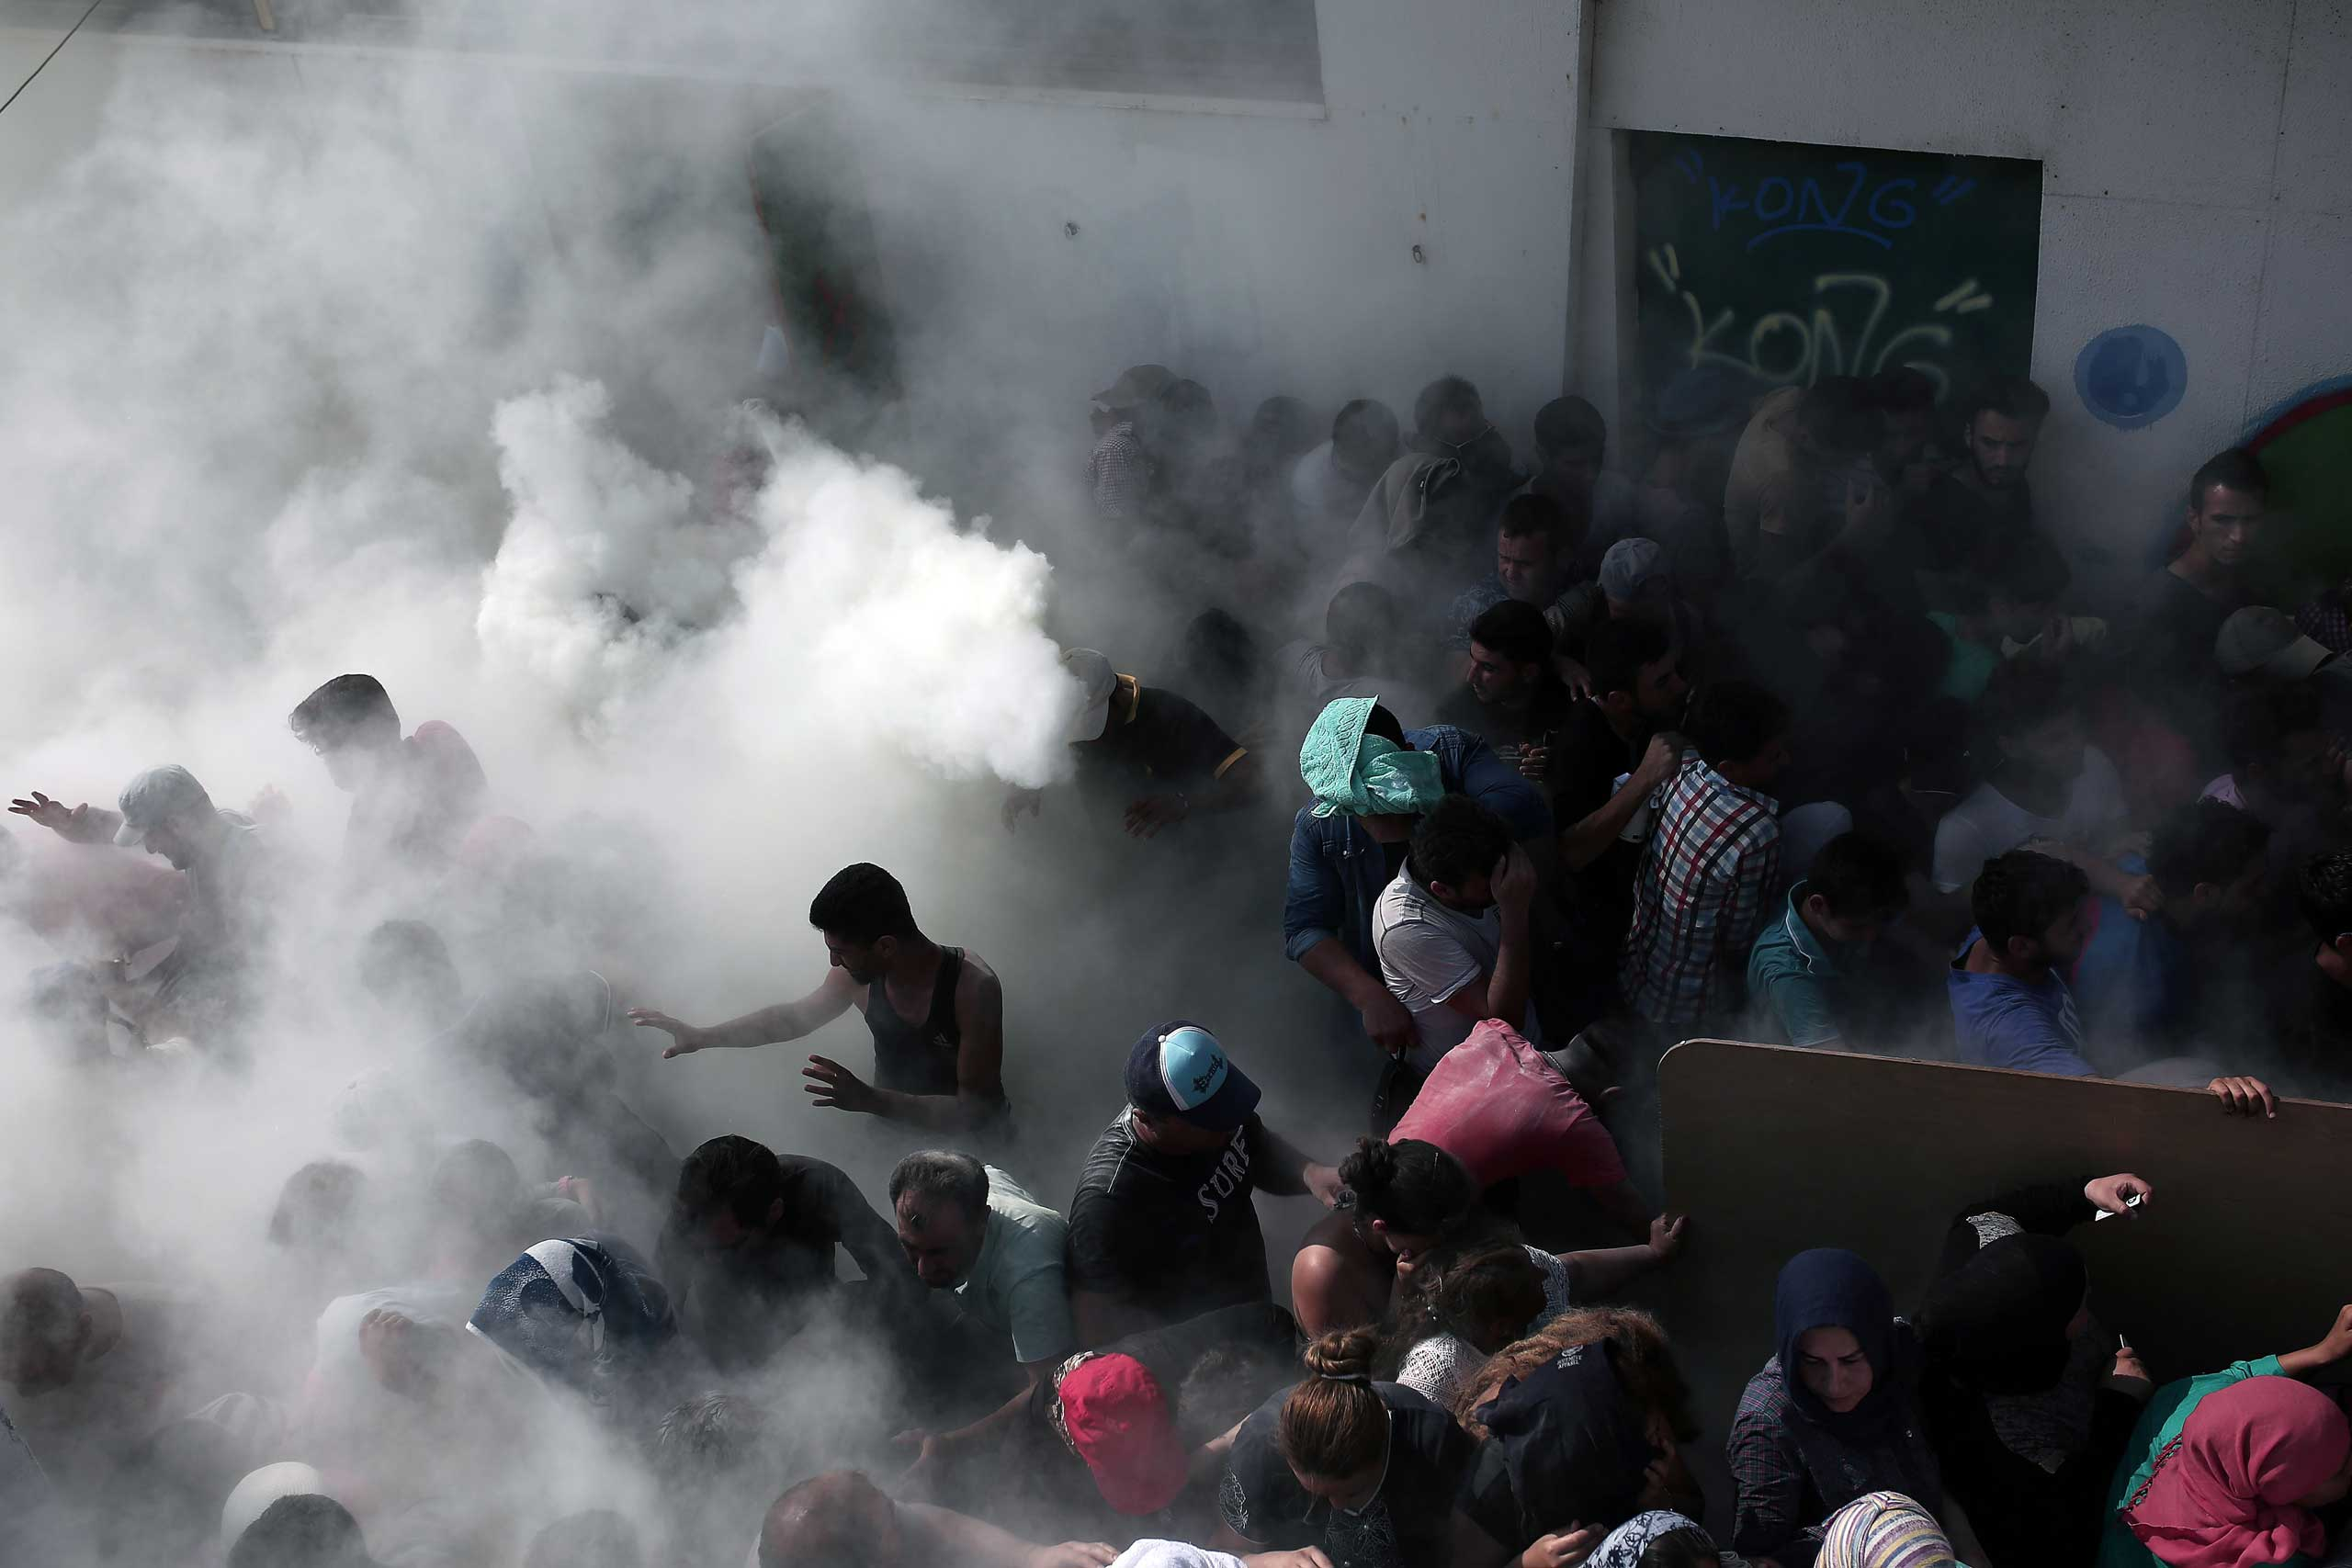 Policemen try to disperse hundreds of migrants by spraying them with fire extinguishers during a gathering for a registration procedure at the stadium on the Greek island of Kos, Aug. 11, 2015.